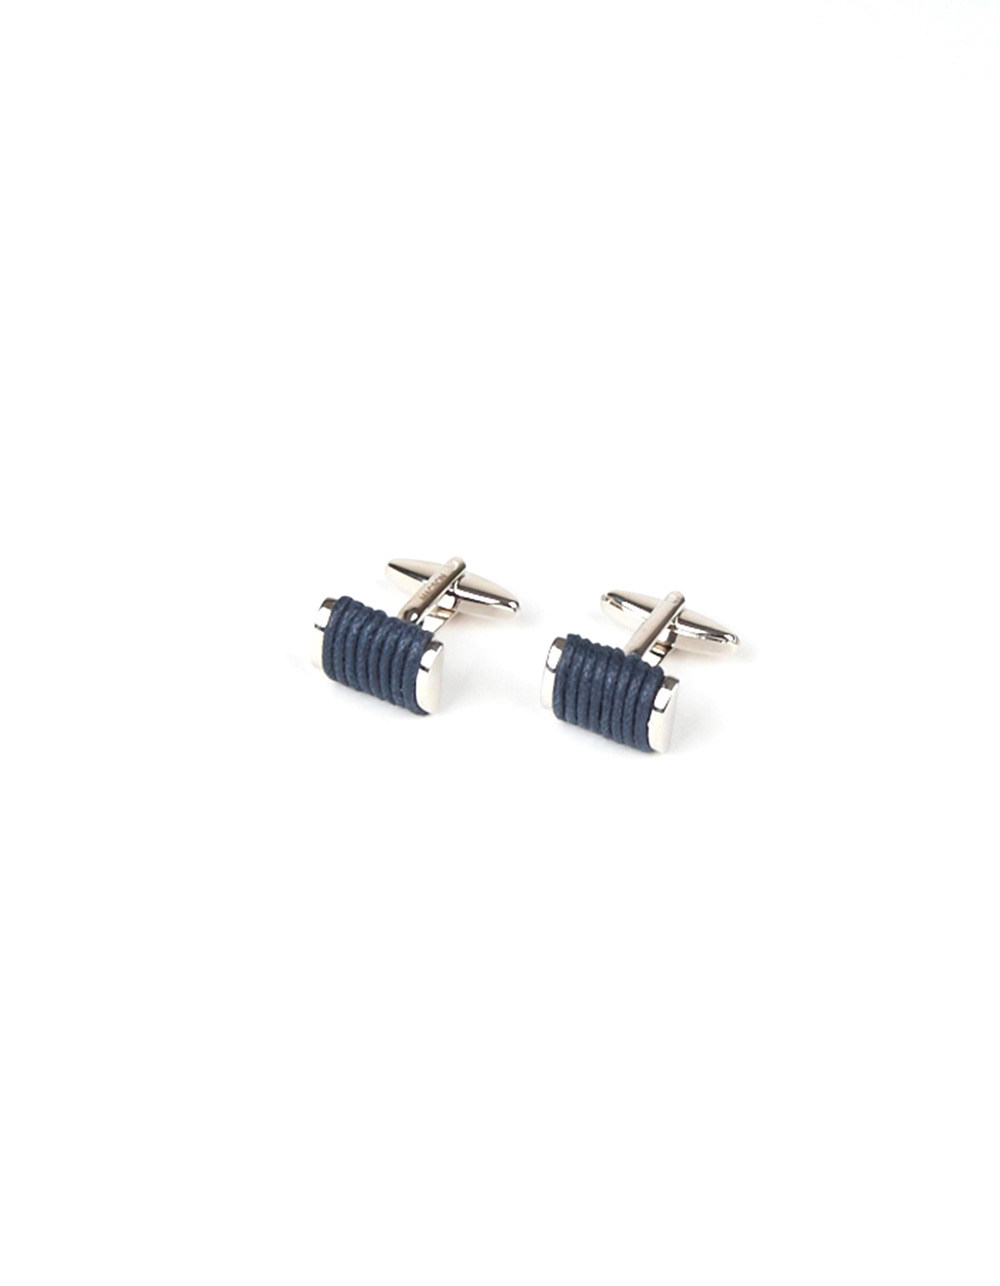 Metallic dark blue cufflinks